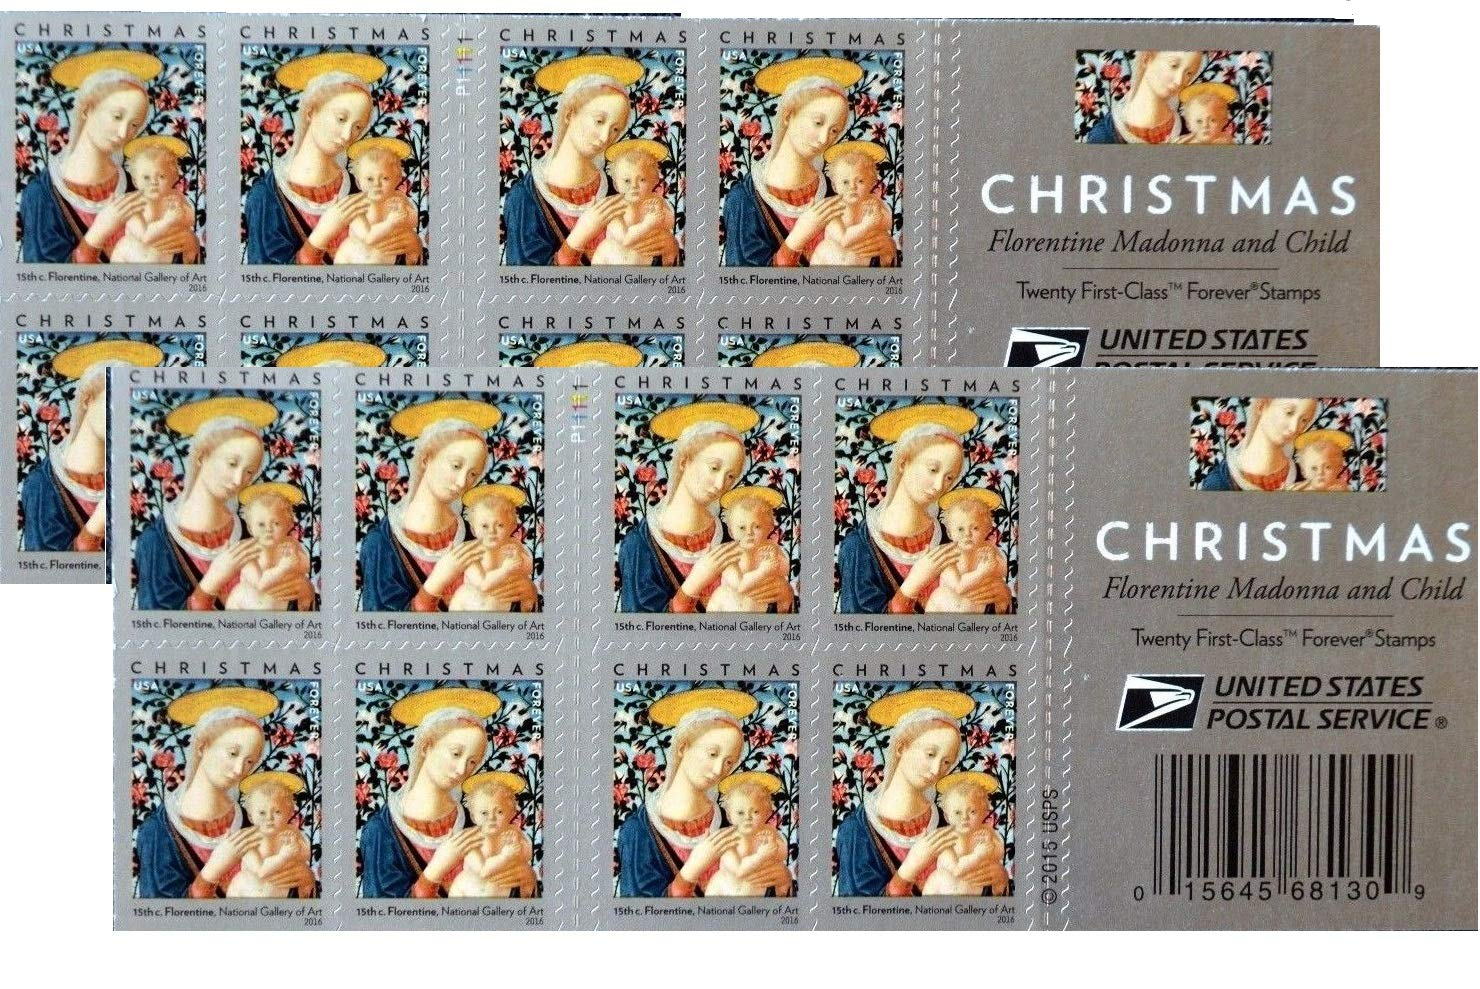 Florentine Madonna and Child USPS Forever First Class Postage Stamp U.S. Holiday Christmas Sheets (20 Stamps) (Booklet of 20 stamps)